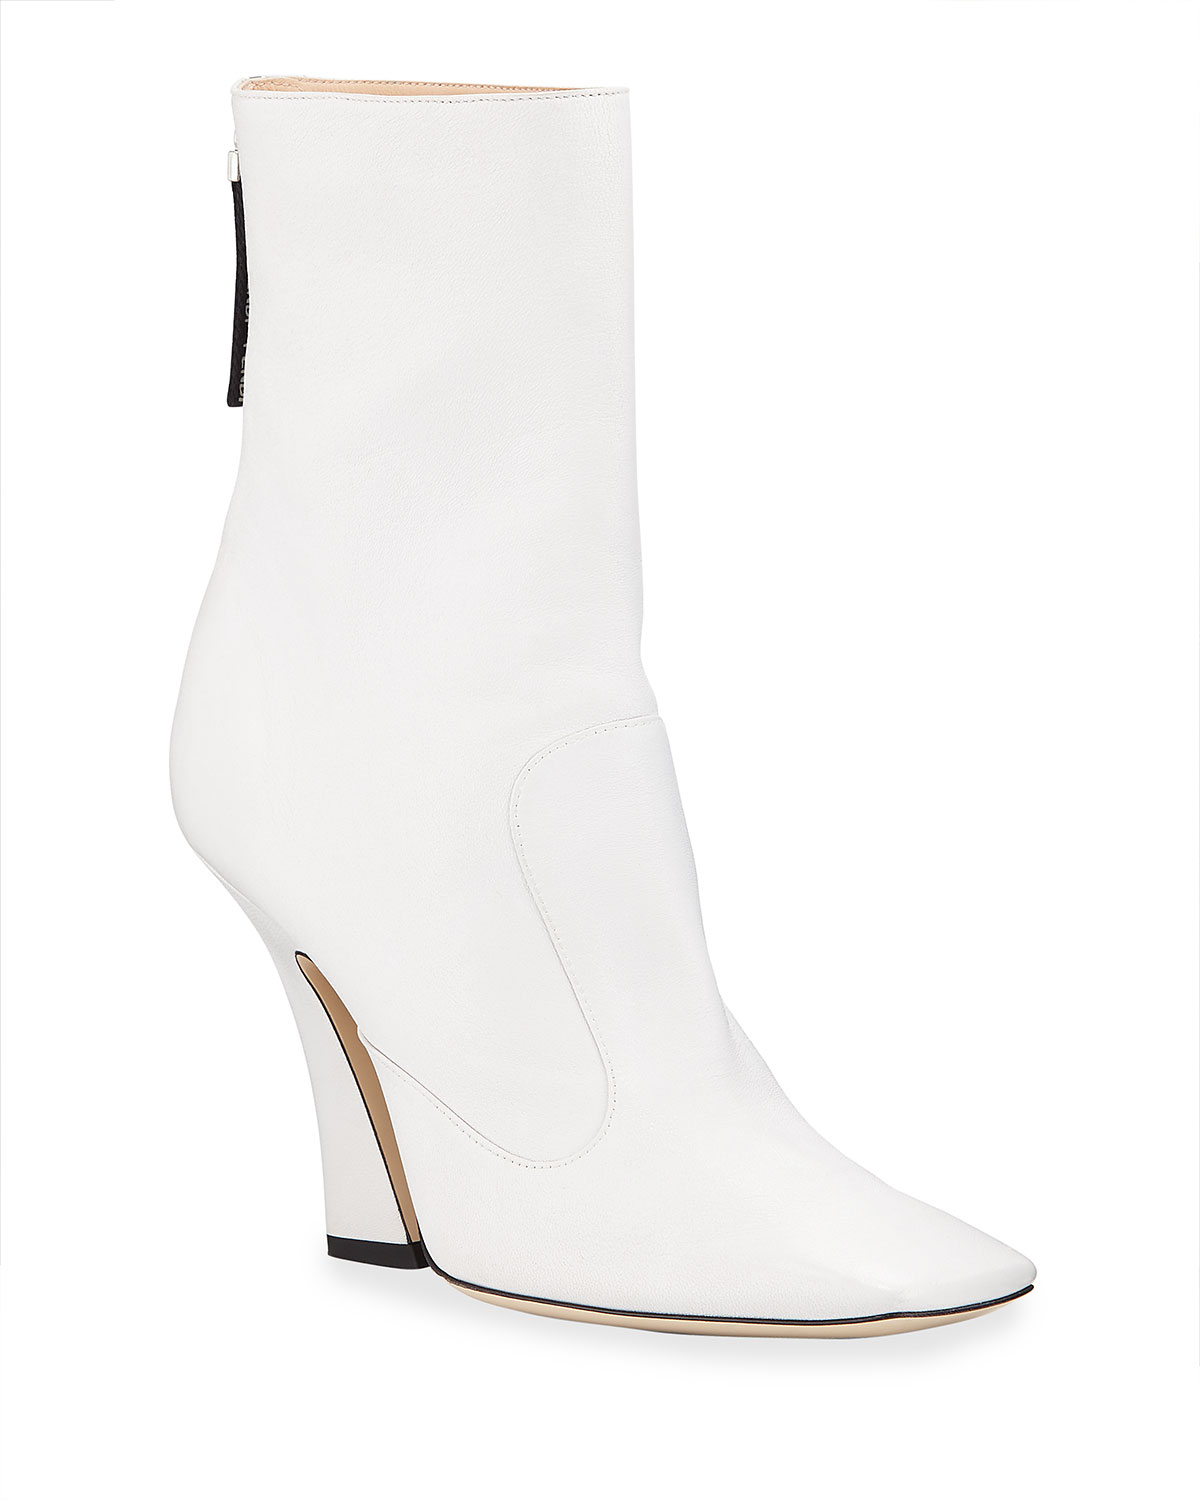 FFreedom 105mm Calf Leather Booties